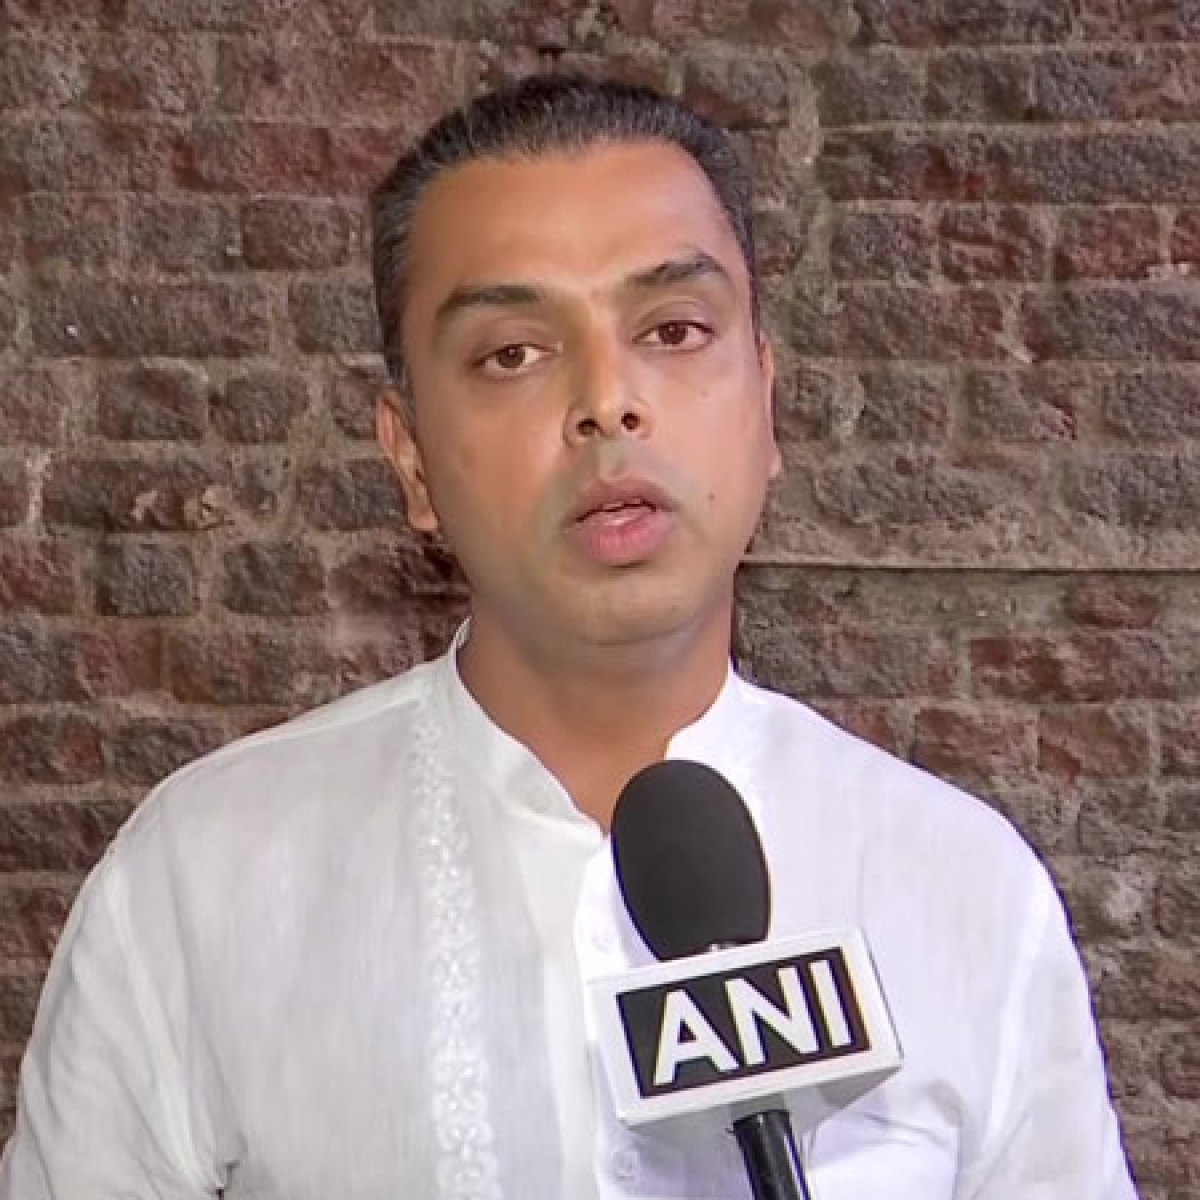 Milind Deora reveals having suicidal thoughts, shares five tools to cope up with depression